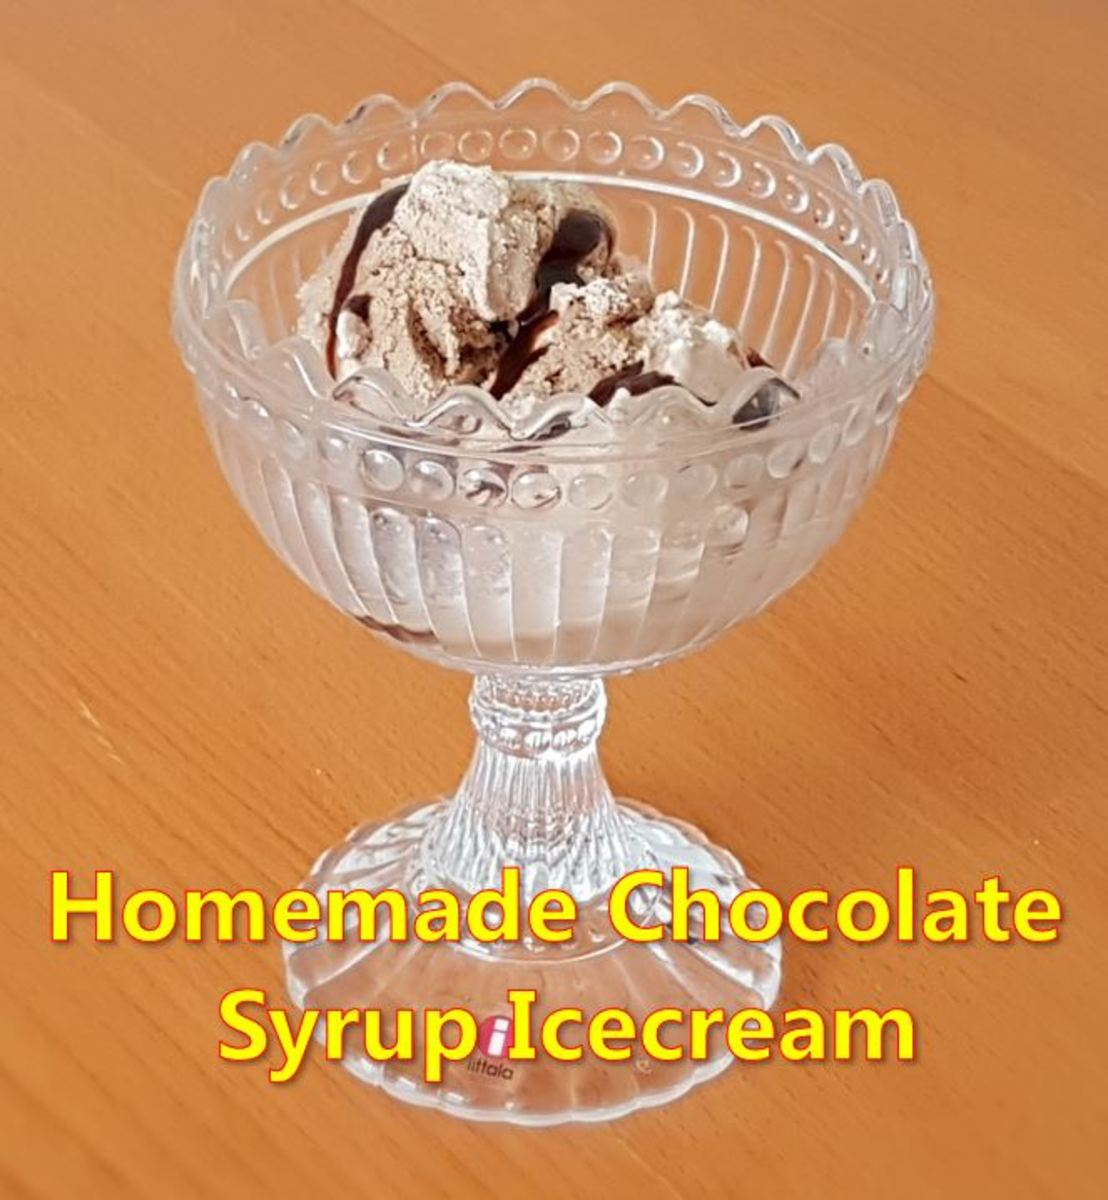 Ready to eat, homemade Hershey's chocolate syrup icecream.